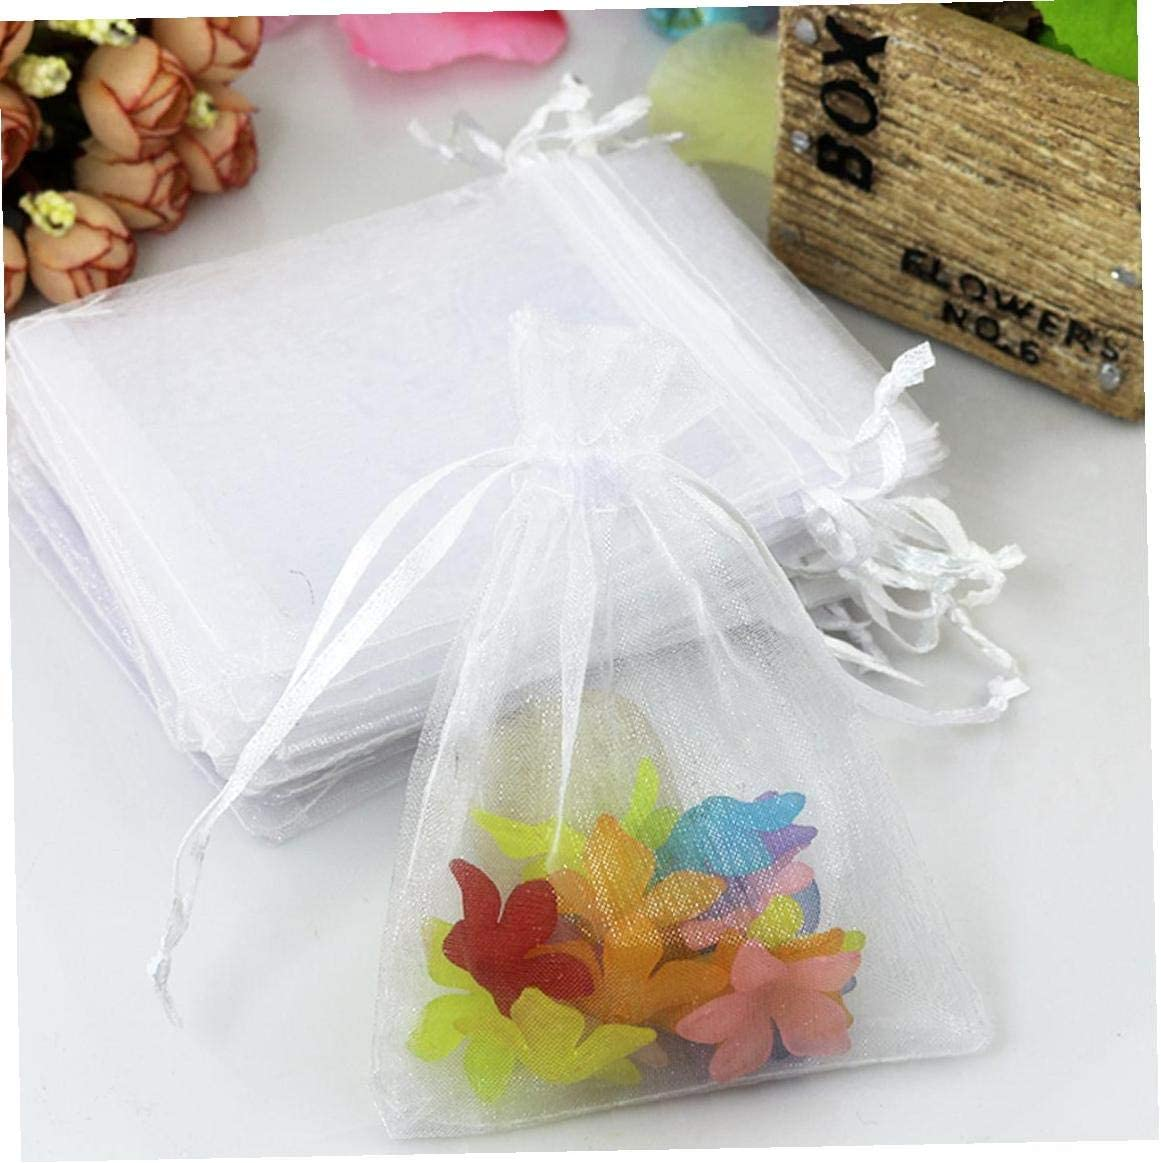 White 120Pcs Organza Bags Drawstring Candy Jewelry Party Wedding Favor Gift Bags Organza Present Bags with Drawstring